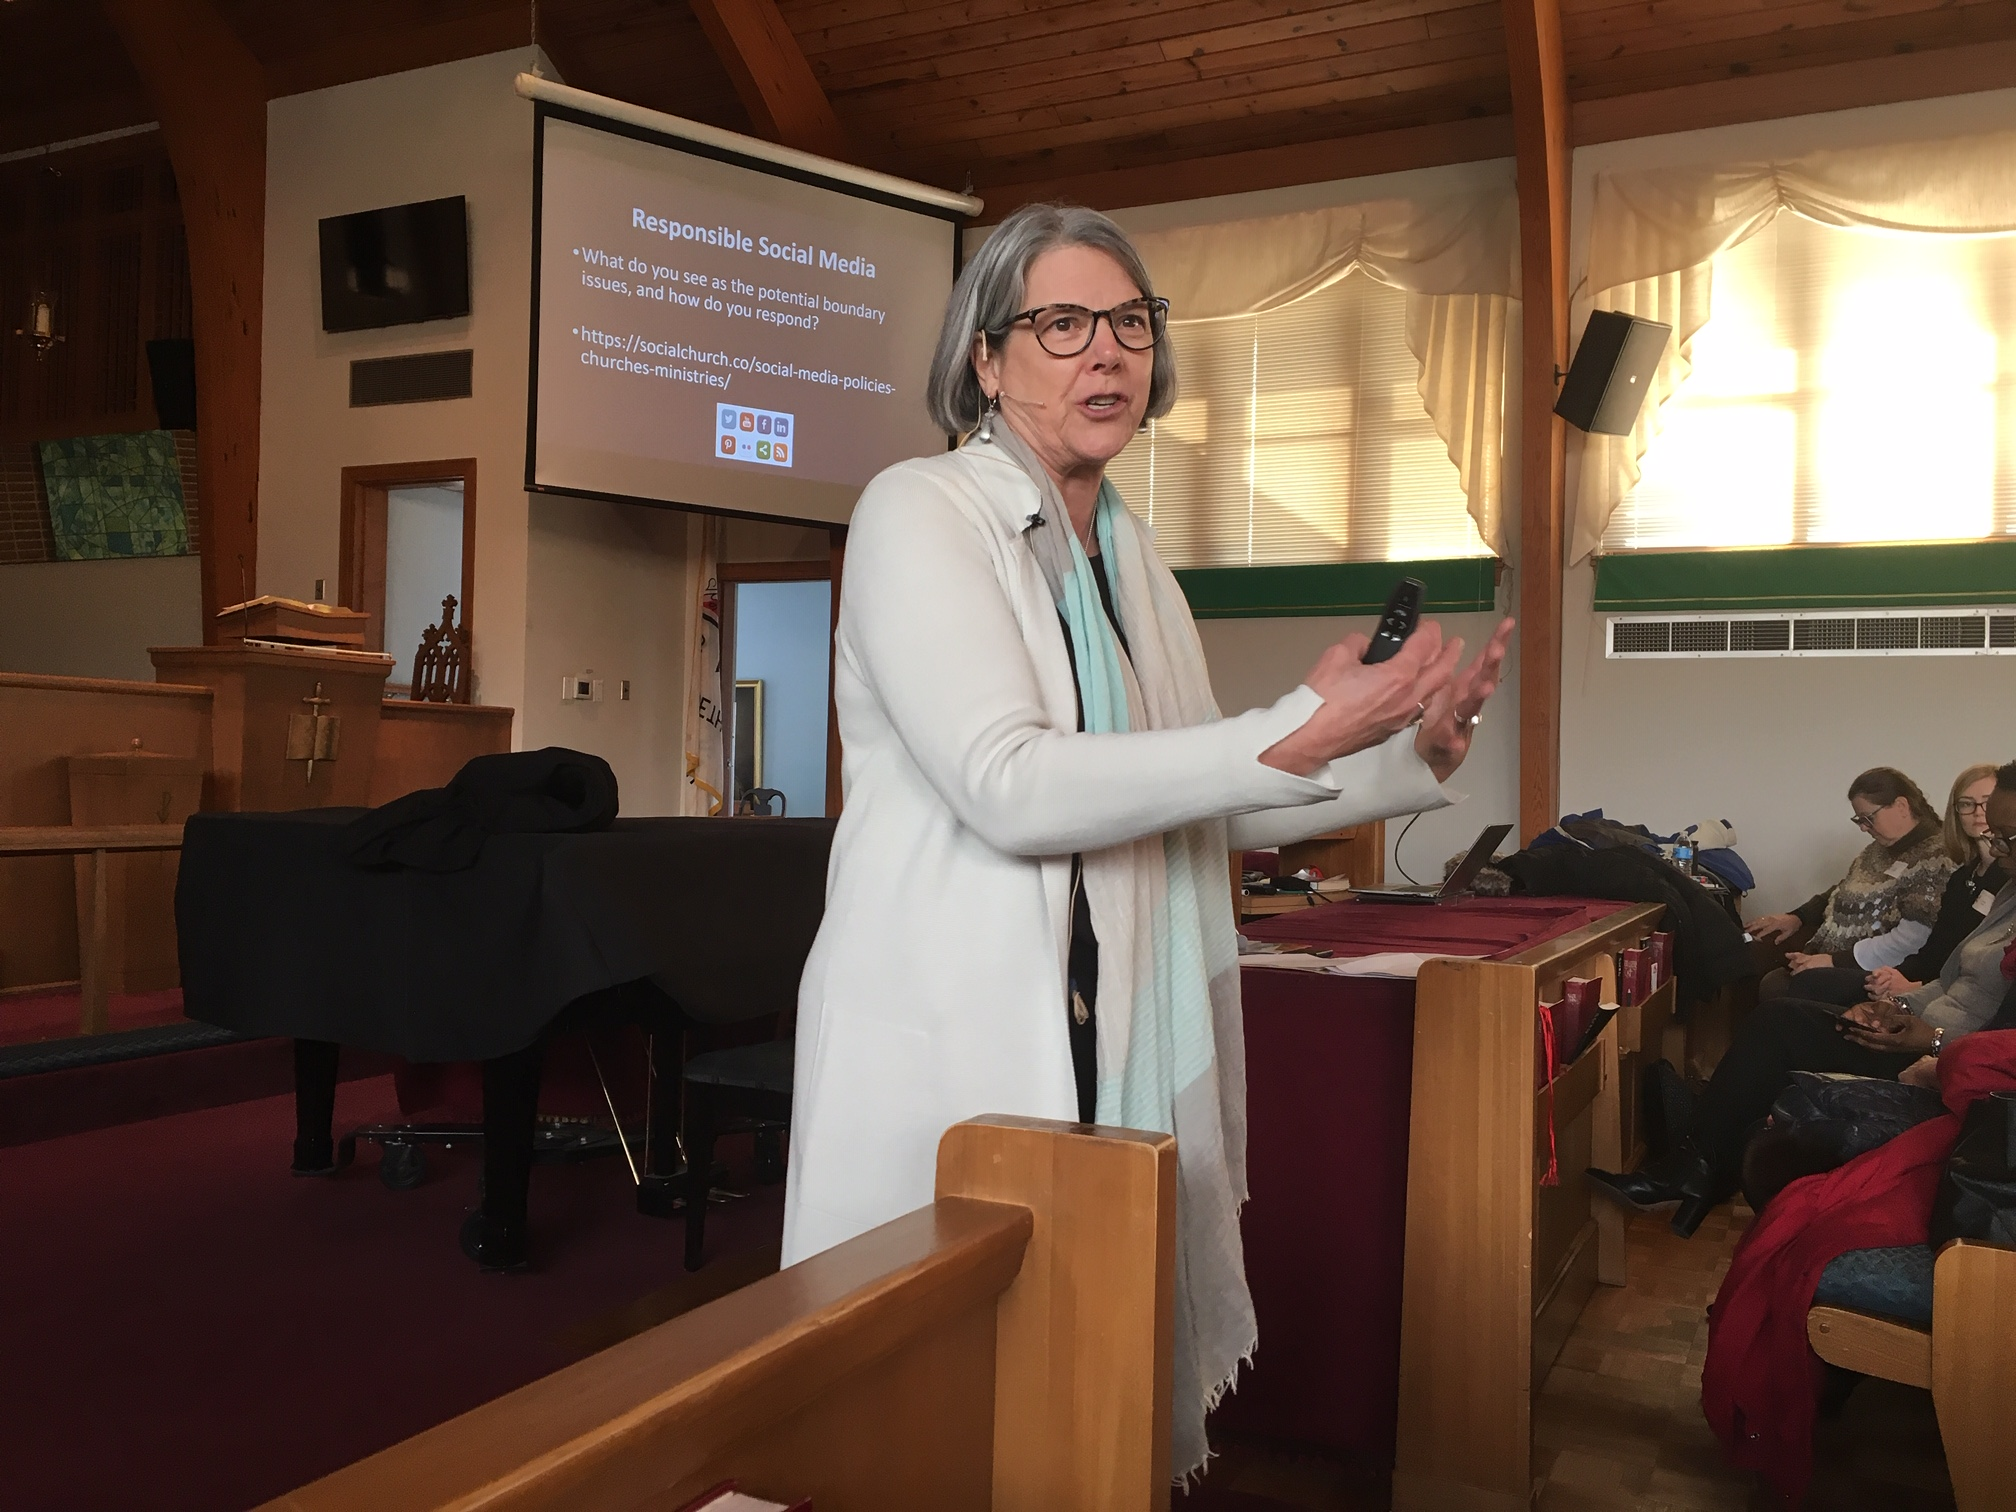 Becky Posey Williams offers training at Arnolia UMC in Baltimore. Photo by Melissa Lauber.